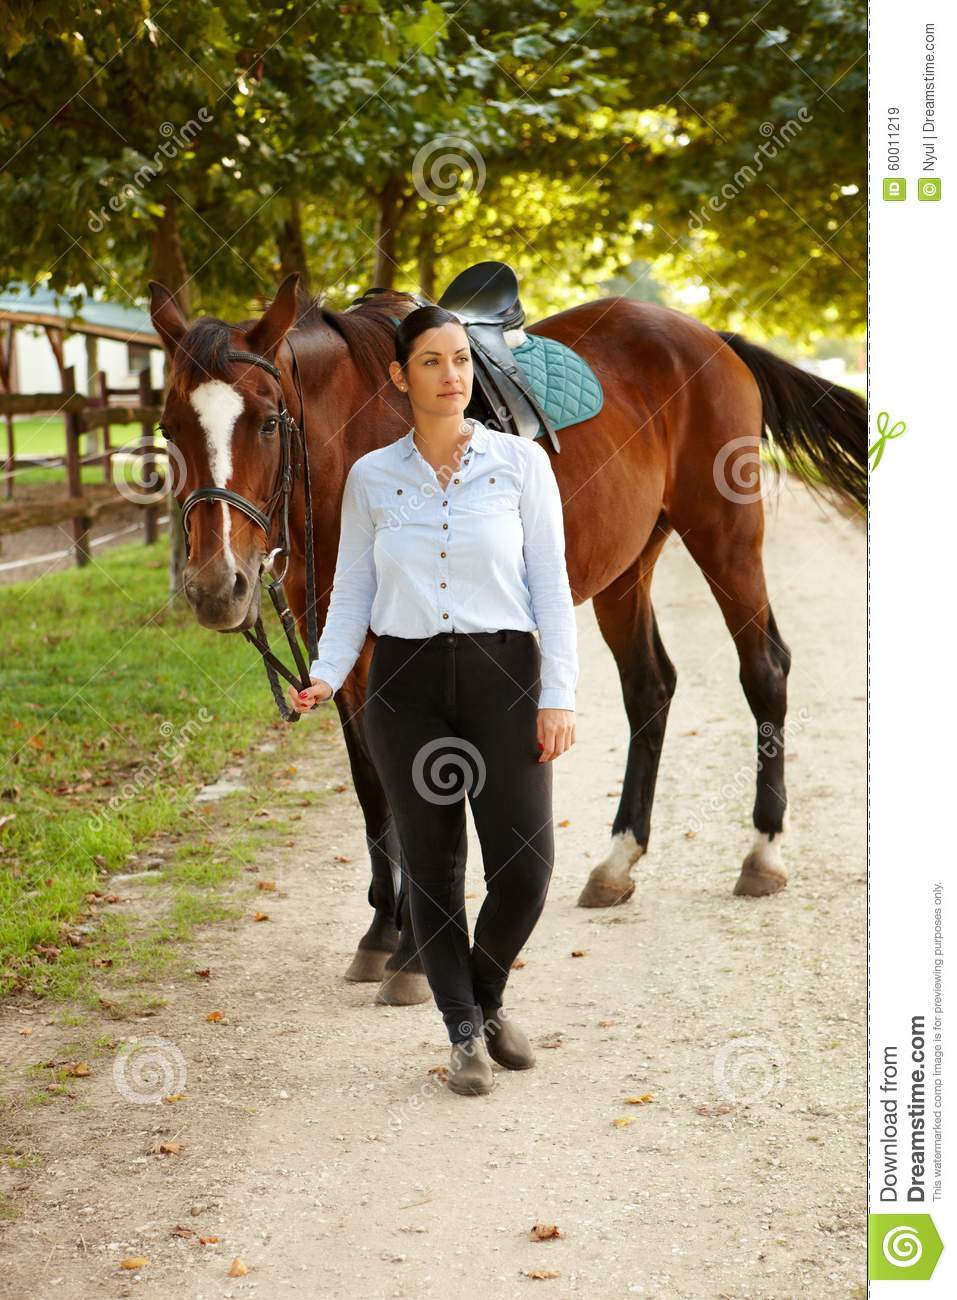 Rider and horse outdoors